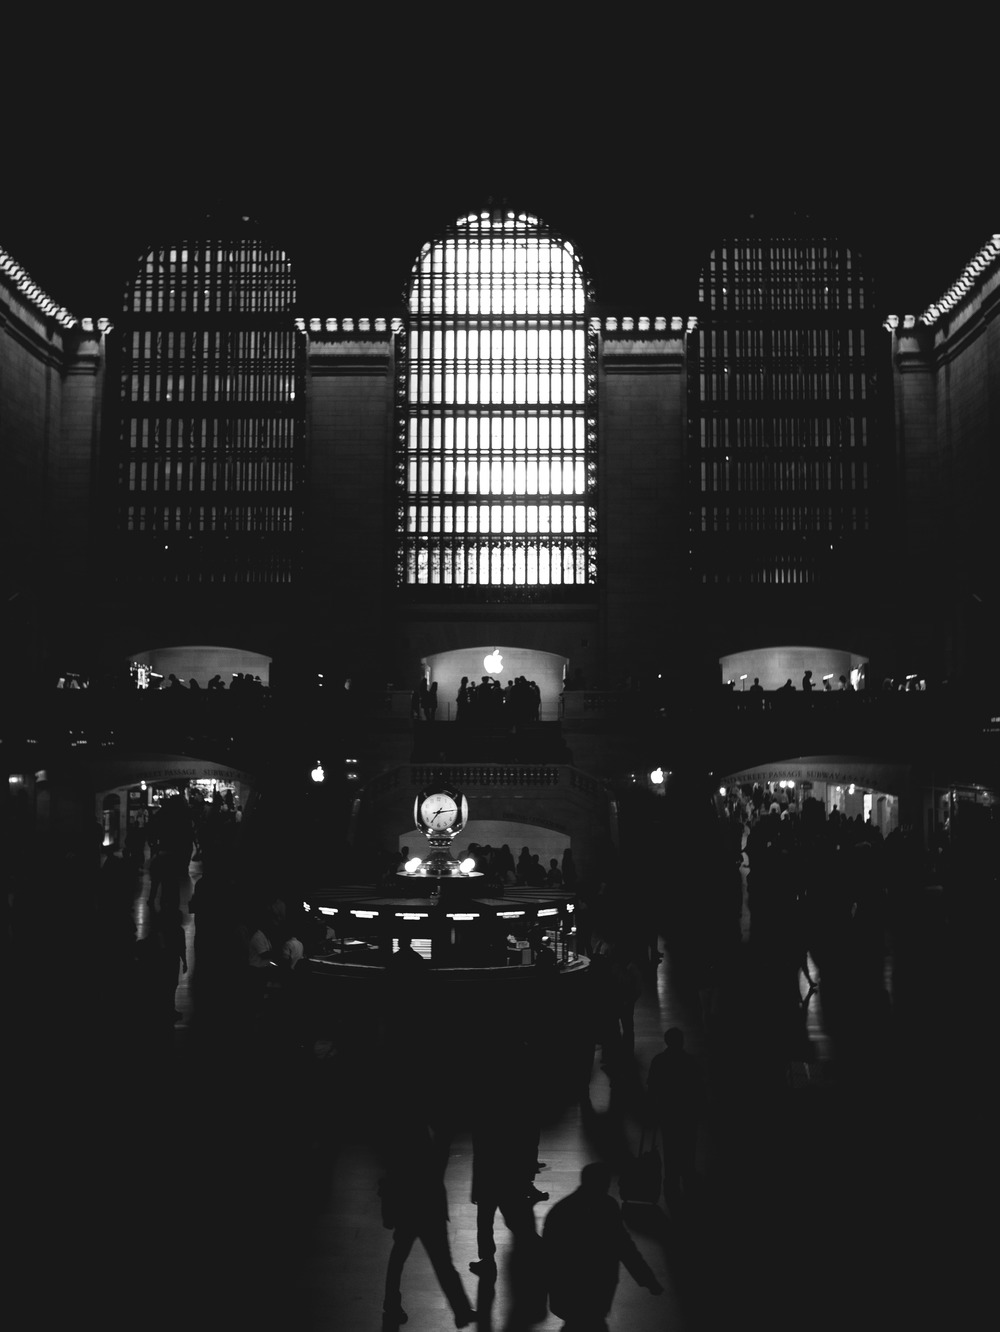 Grand Central Station (Encontre a maça)